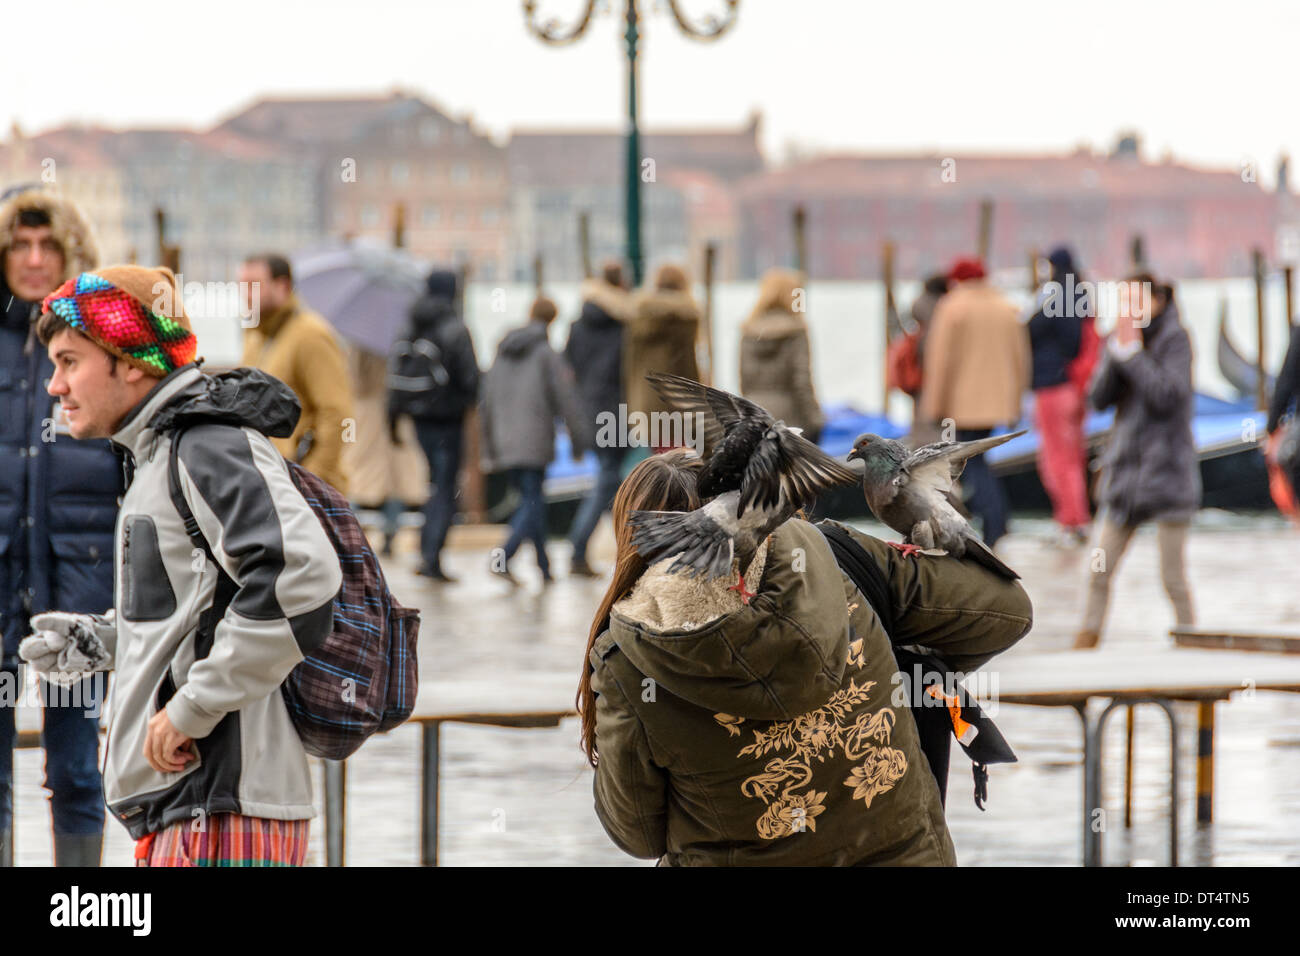 Venice, Italy. Pigeons, doves of St Mark´s Square landing on arm and shoulder of a young woman. Stock Photo